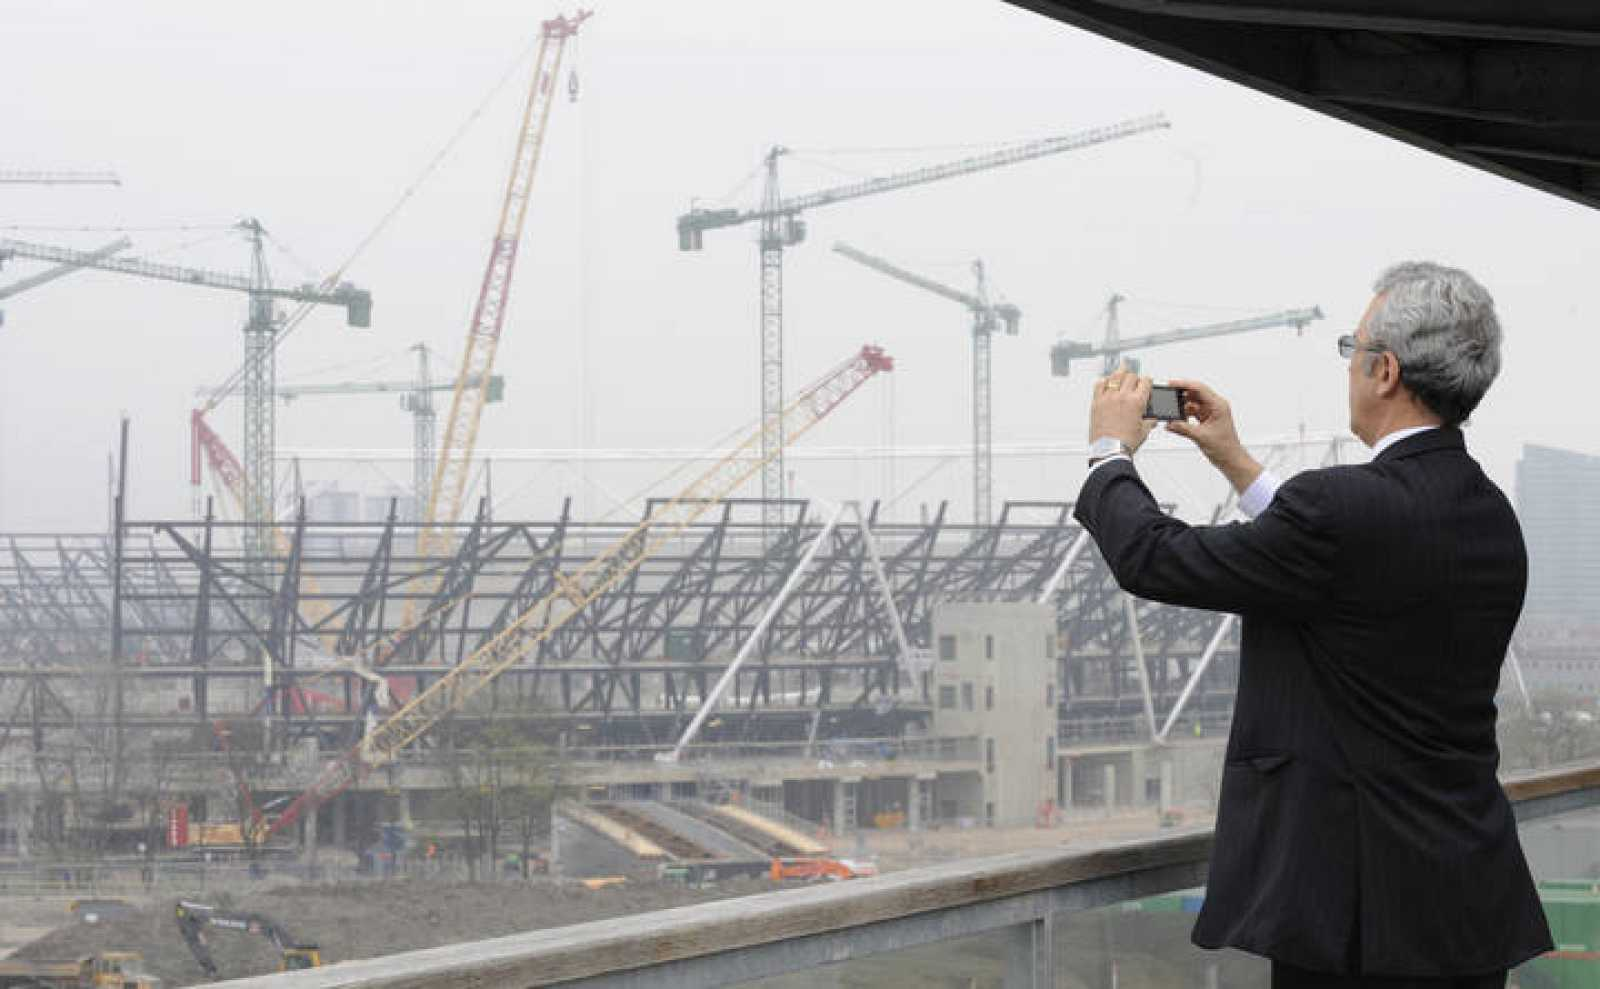 A man photographs the main Olympic Stadium construction at Stratford in east London